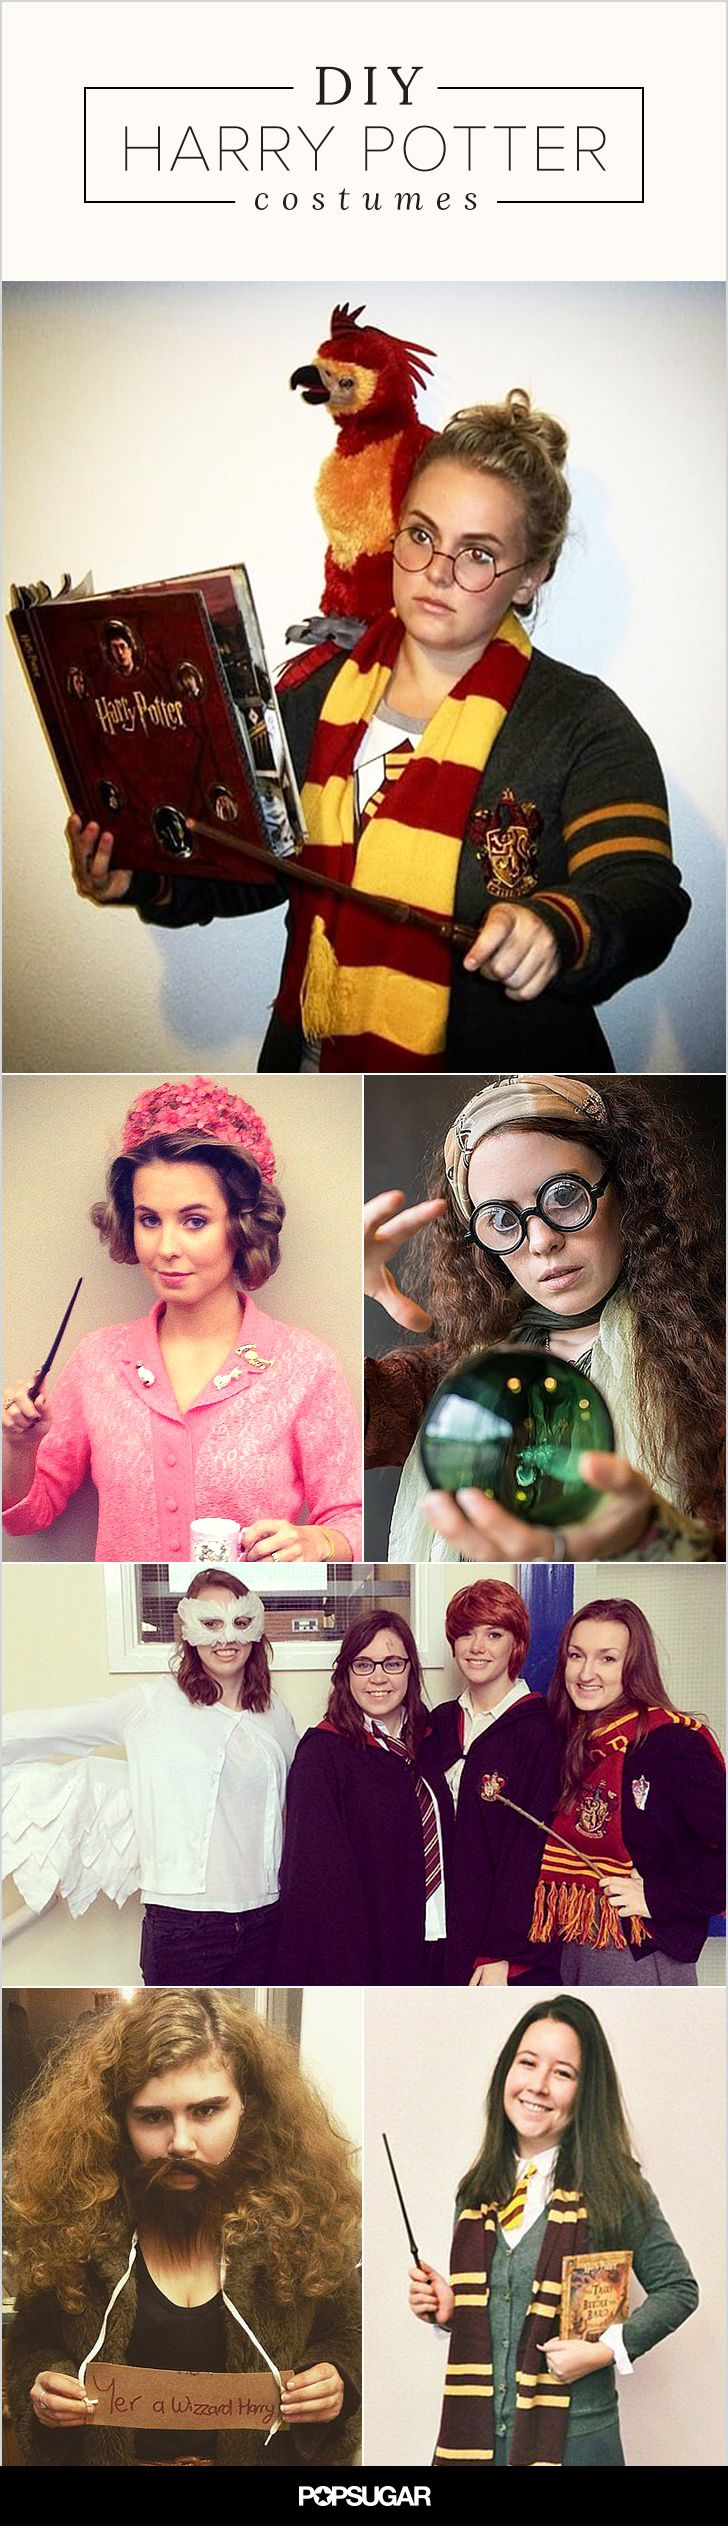 72 Siriusly Creative Harry Potter Costume Ideas For ...